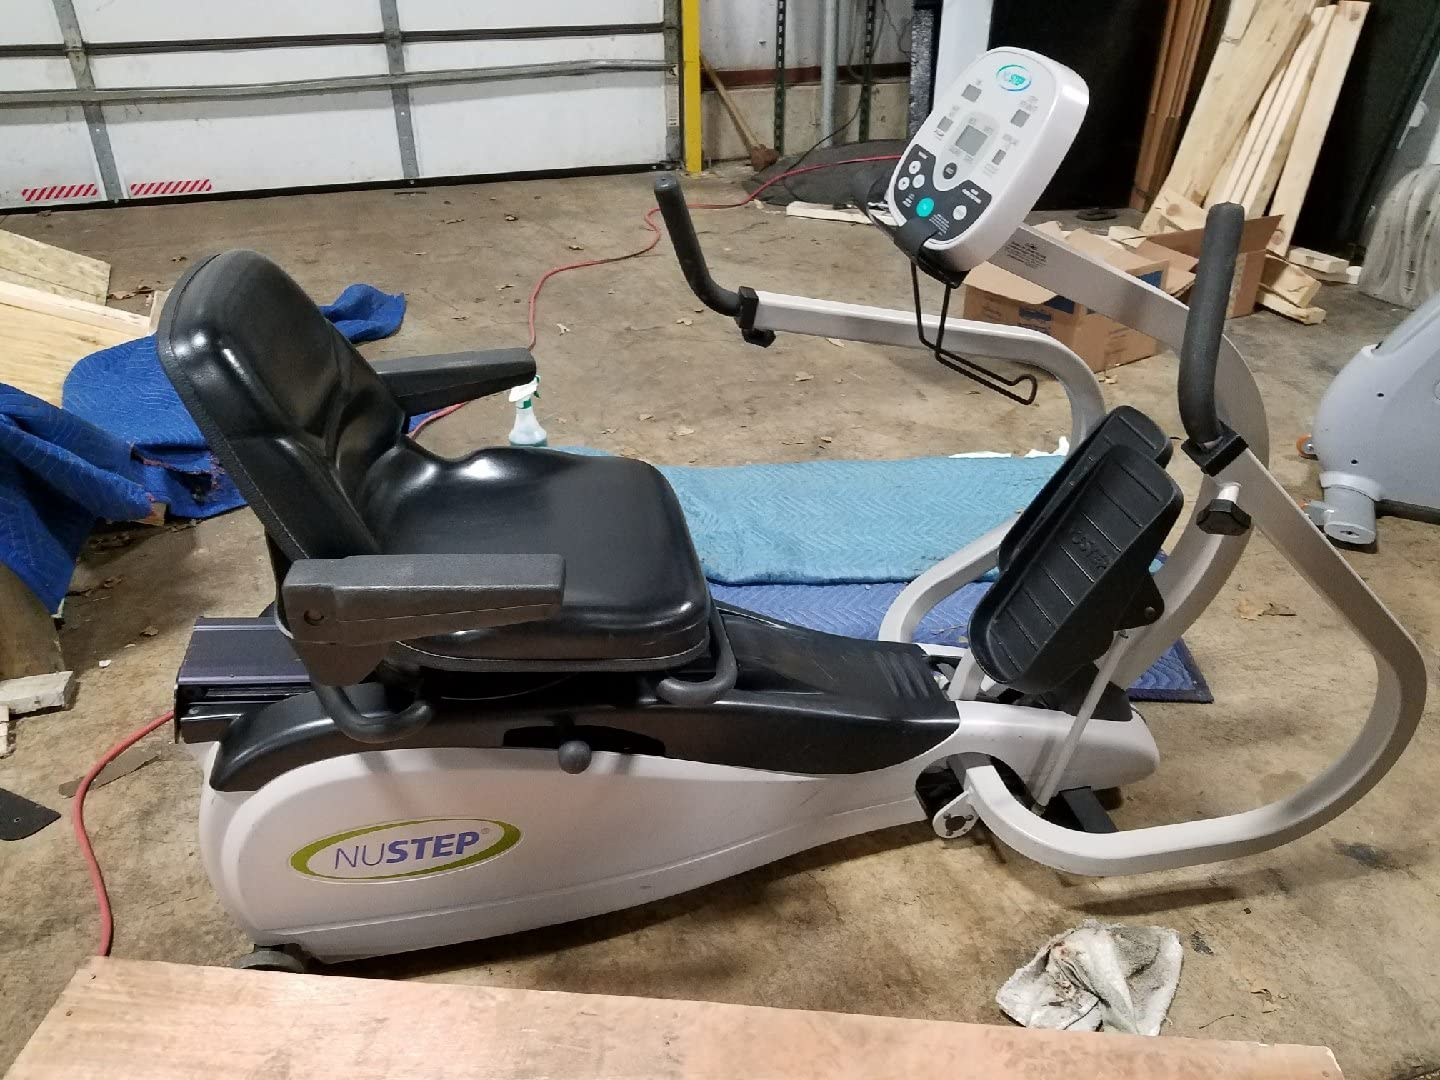 Nustep TRS 4000 Recumbent Cross Trainer